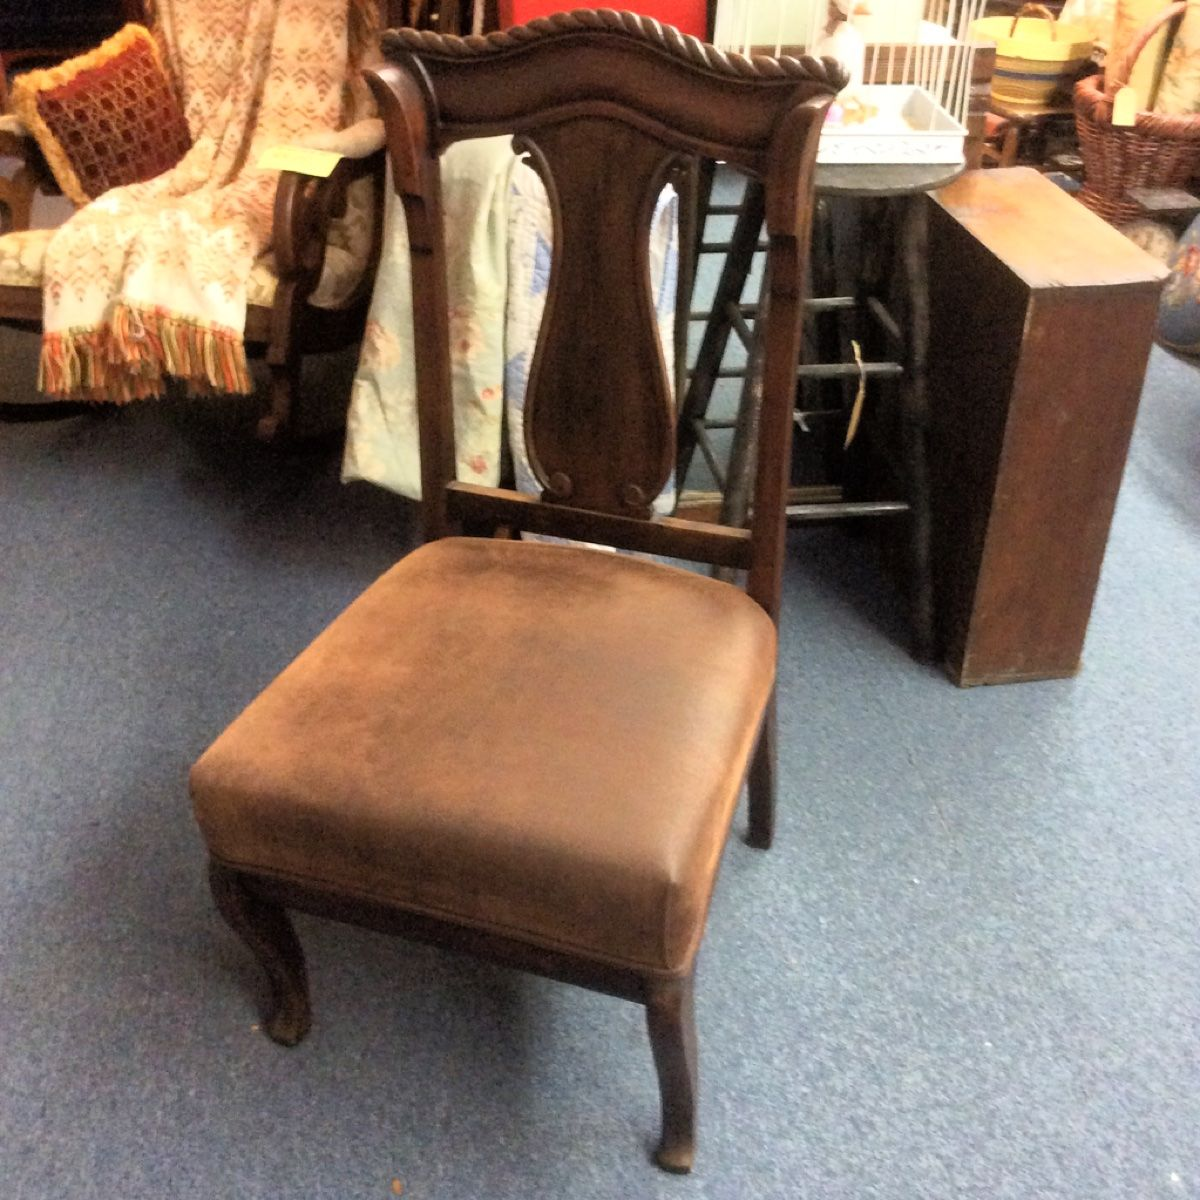 Patio Furniture Wake Forest Nc: At Olde Towne Antiques & Upholstery, 145 E Wait Ave, Wake